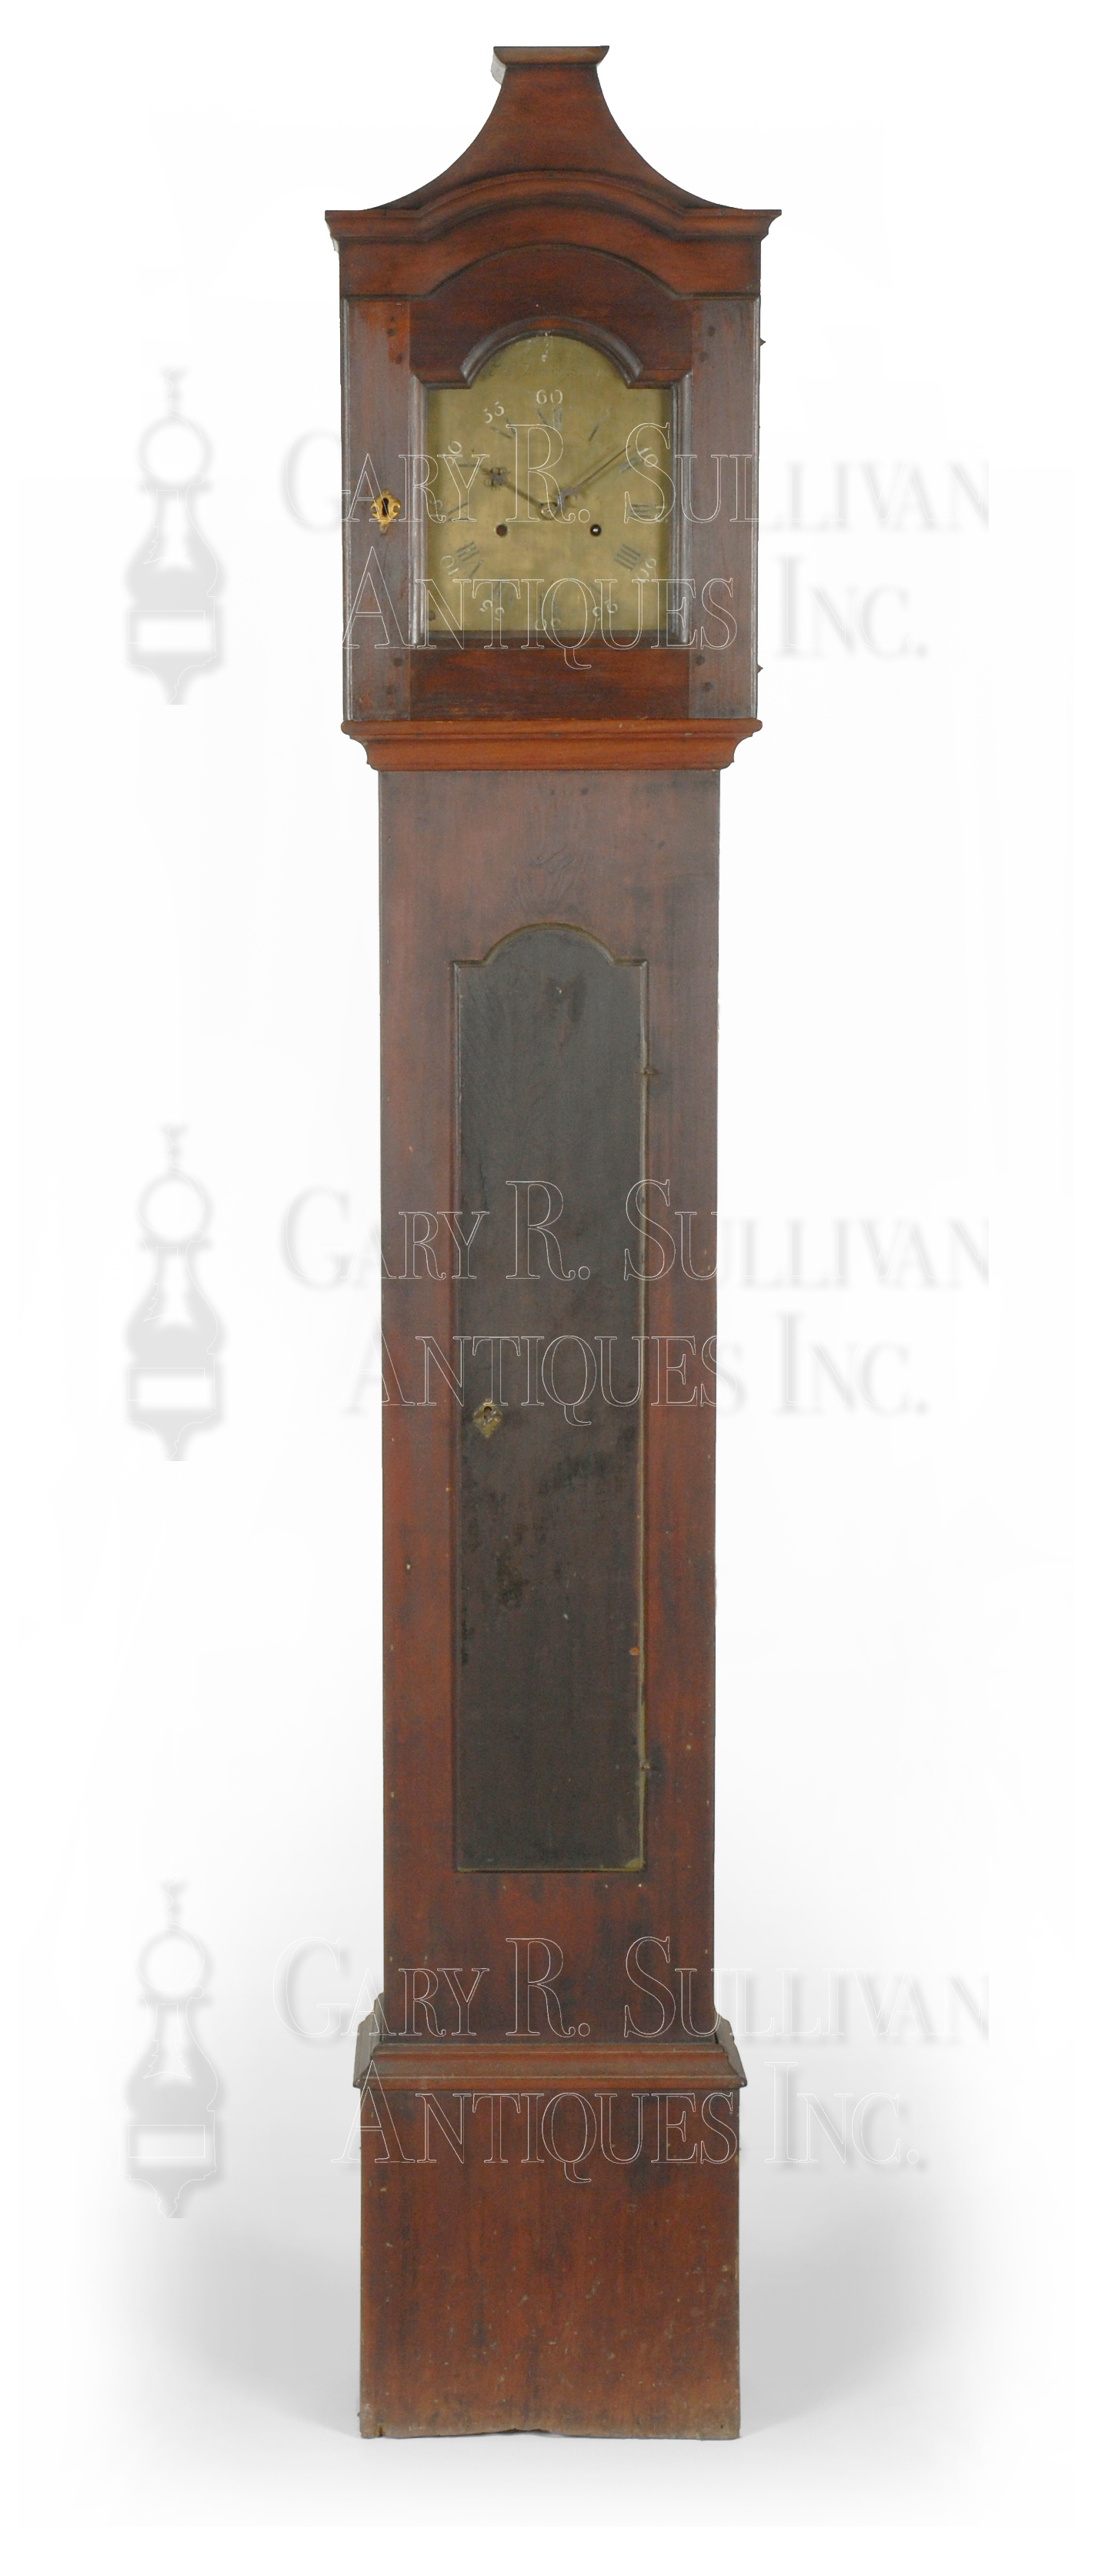 View in Browser ... - Nathaniel Dominy Tall Clock (East Hampton, Long Island) - Clocks